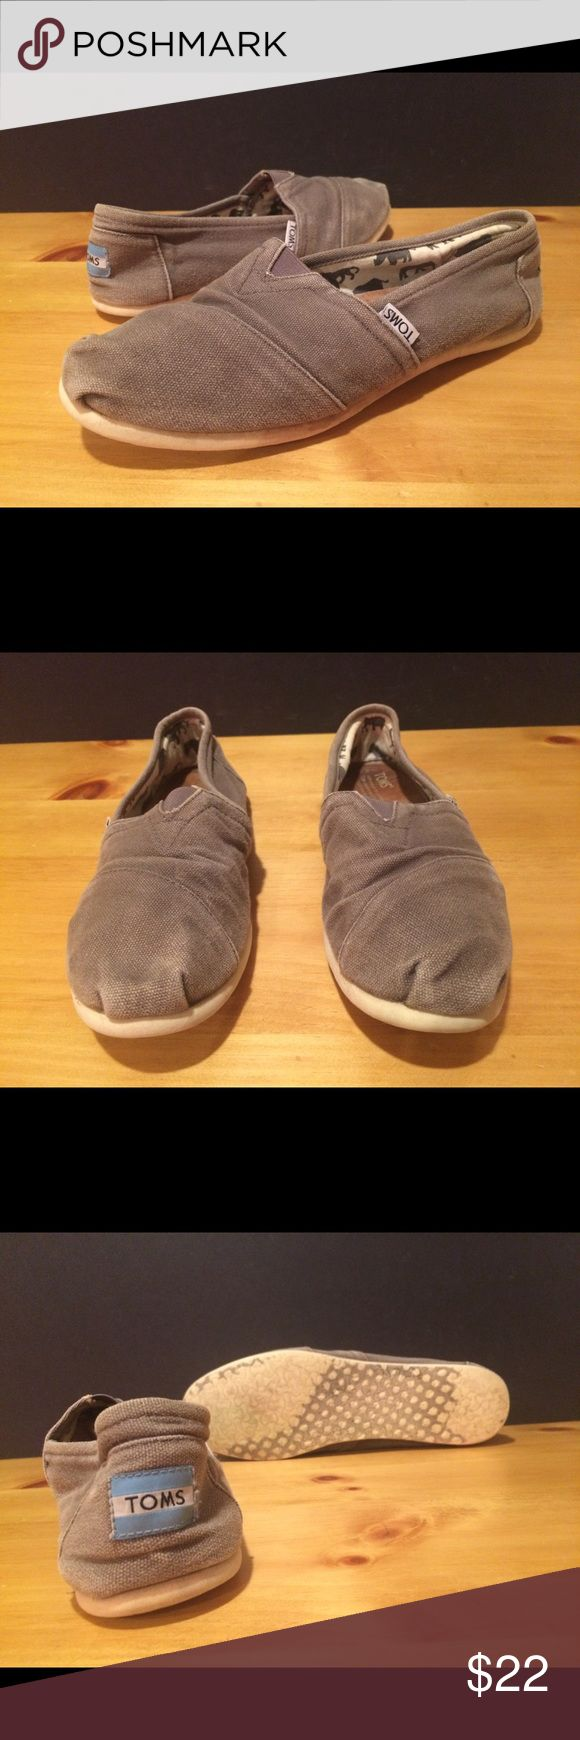 Women's Size 8.5 Gray Toms Slip On Shoes Women's size 8.5 gray Toms slip on shoes. See photos and please message with any questions! :) TOMS Shoes Flats & Loafers